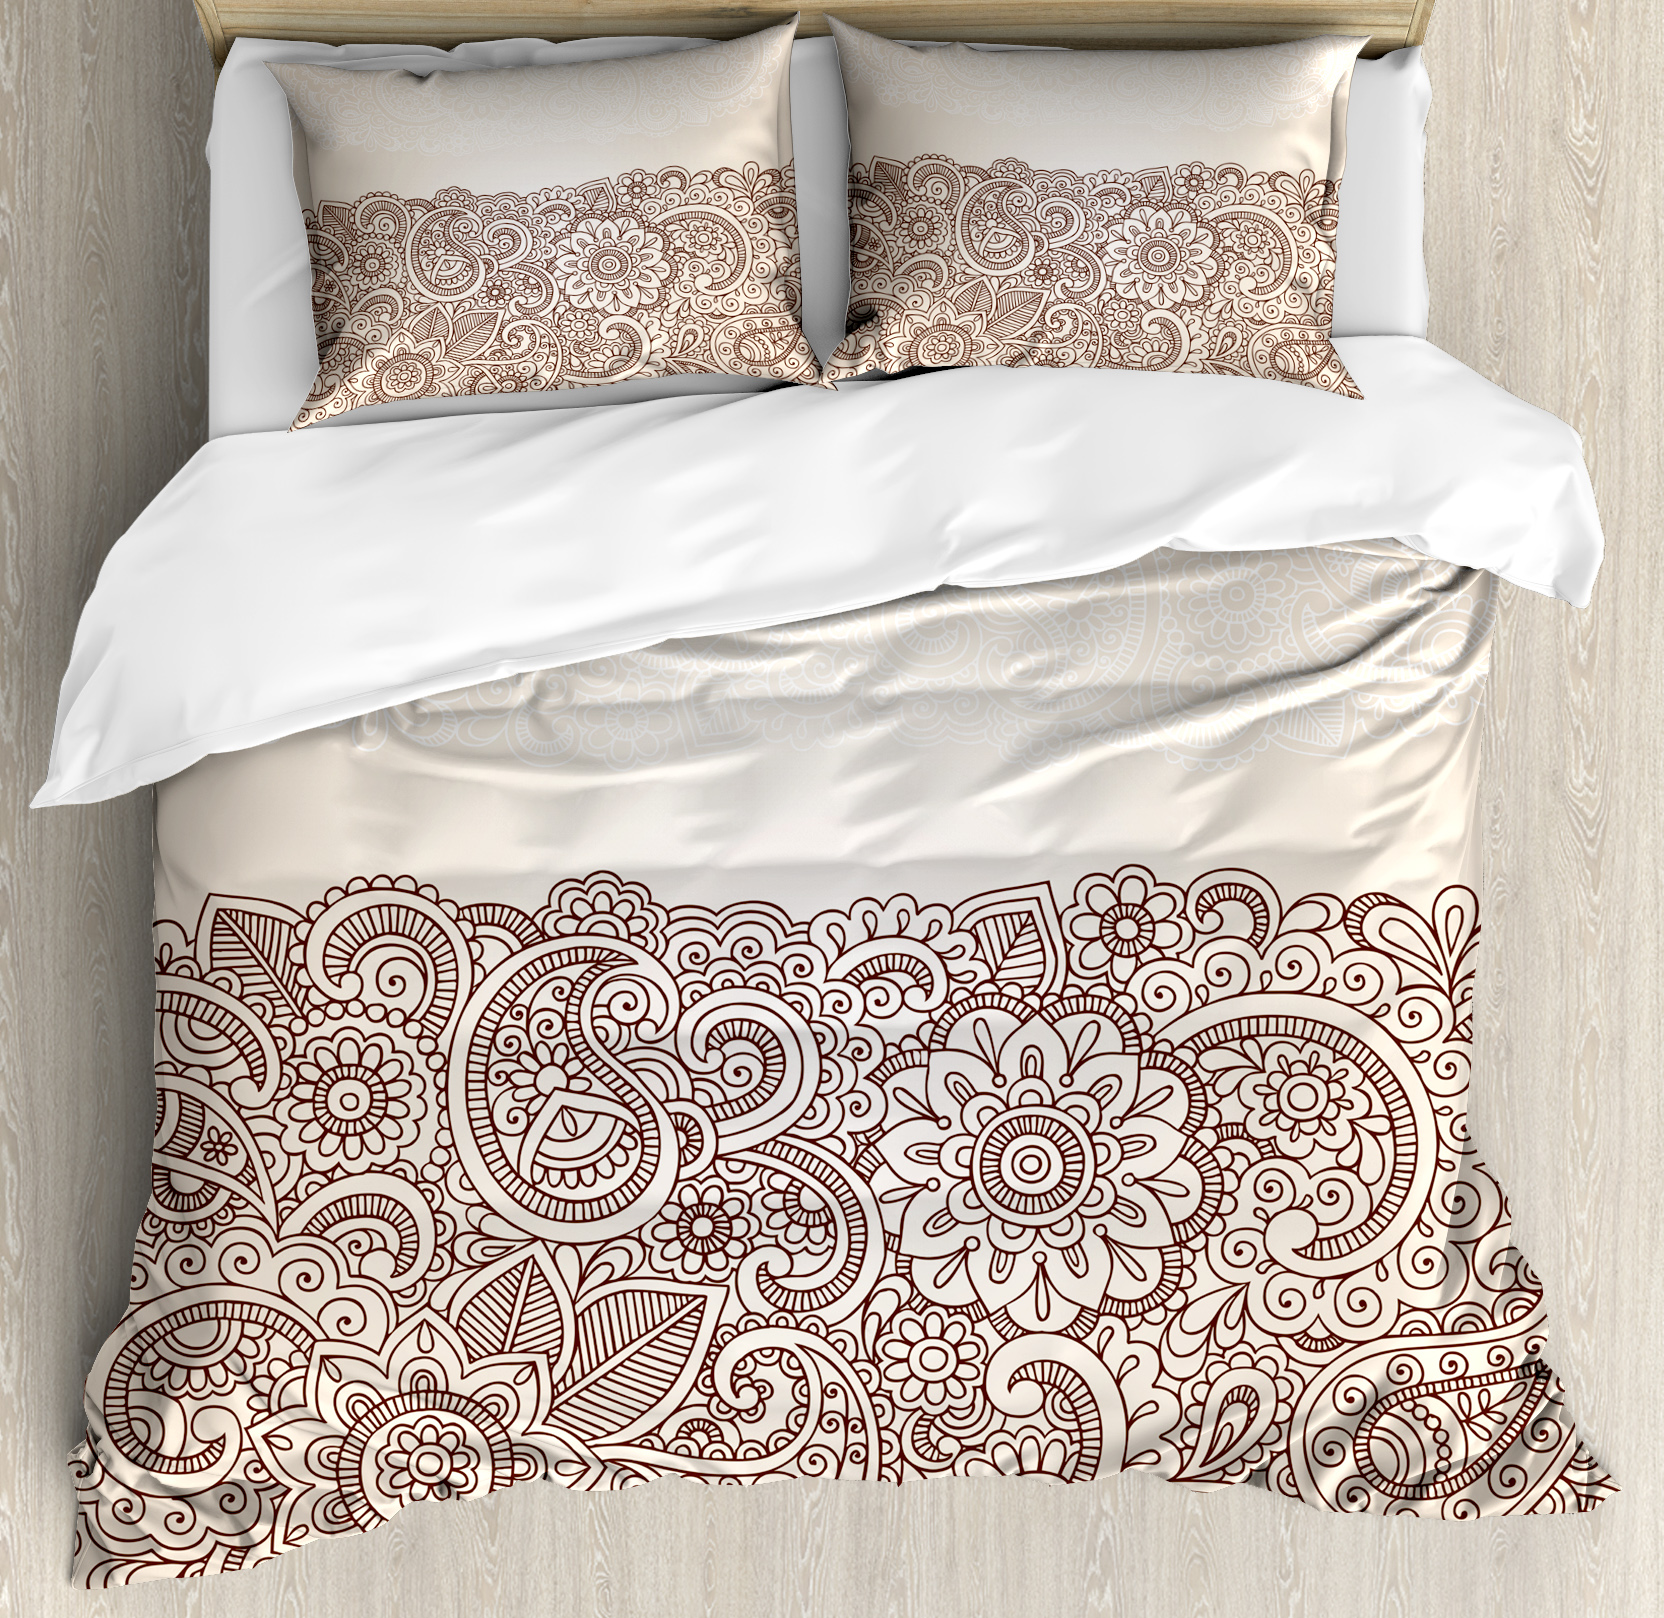 Henna Queen Size Duvet Cover Set, Complex Design with Mandala and Paisley Nature Inspired Traditional Victorian Revival, Decorative 3 Piece Bedding Set with 2 Pillow Shams, Tan Brown, by Ambesonne